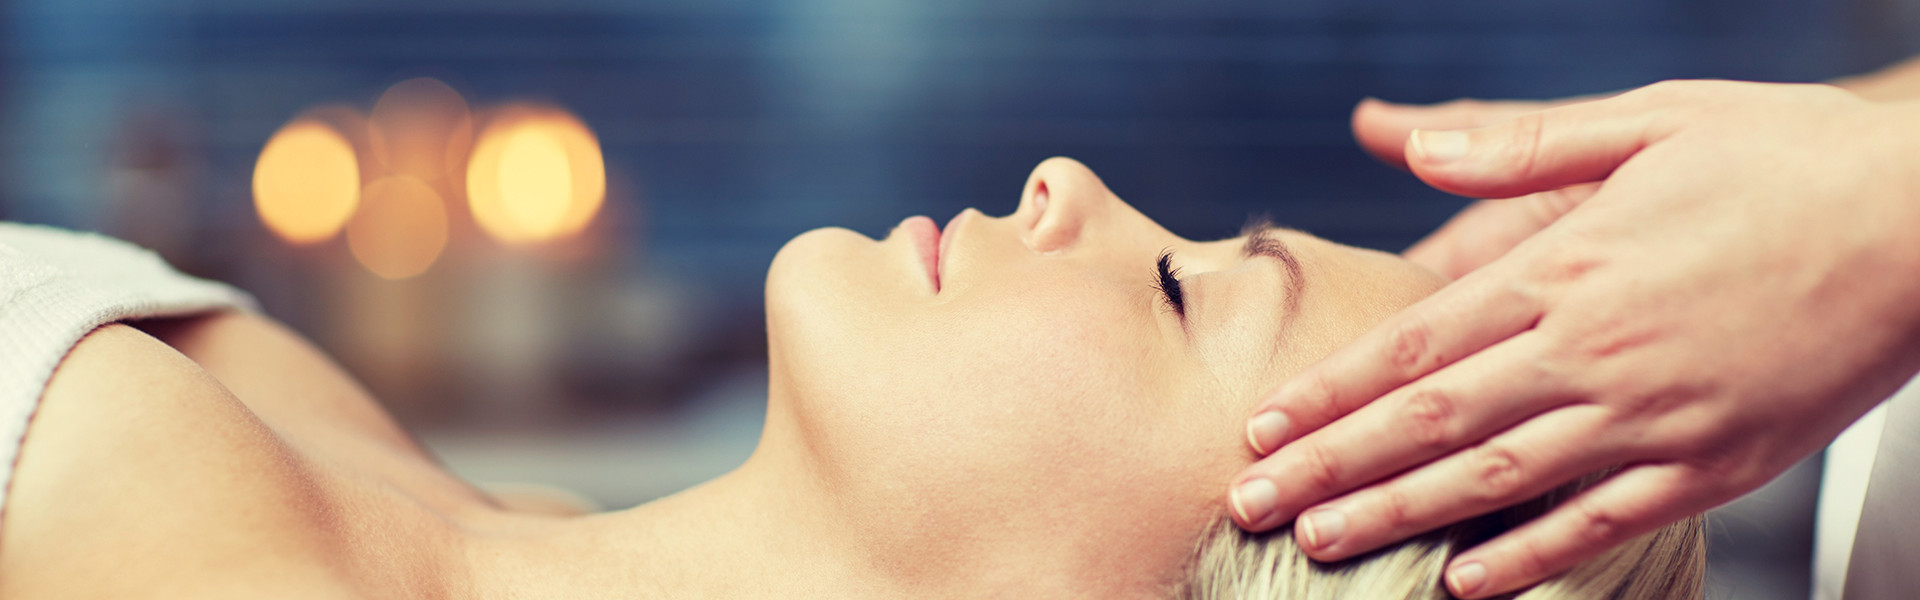 people, beauty, spa, healthy lifestyle and relaxation concept - close up of beautiful young woman lying with closed eyes and having face or head massage in spa